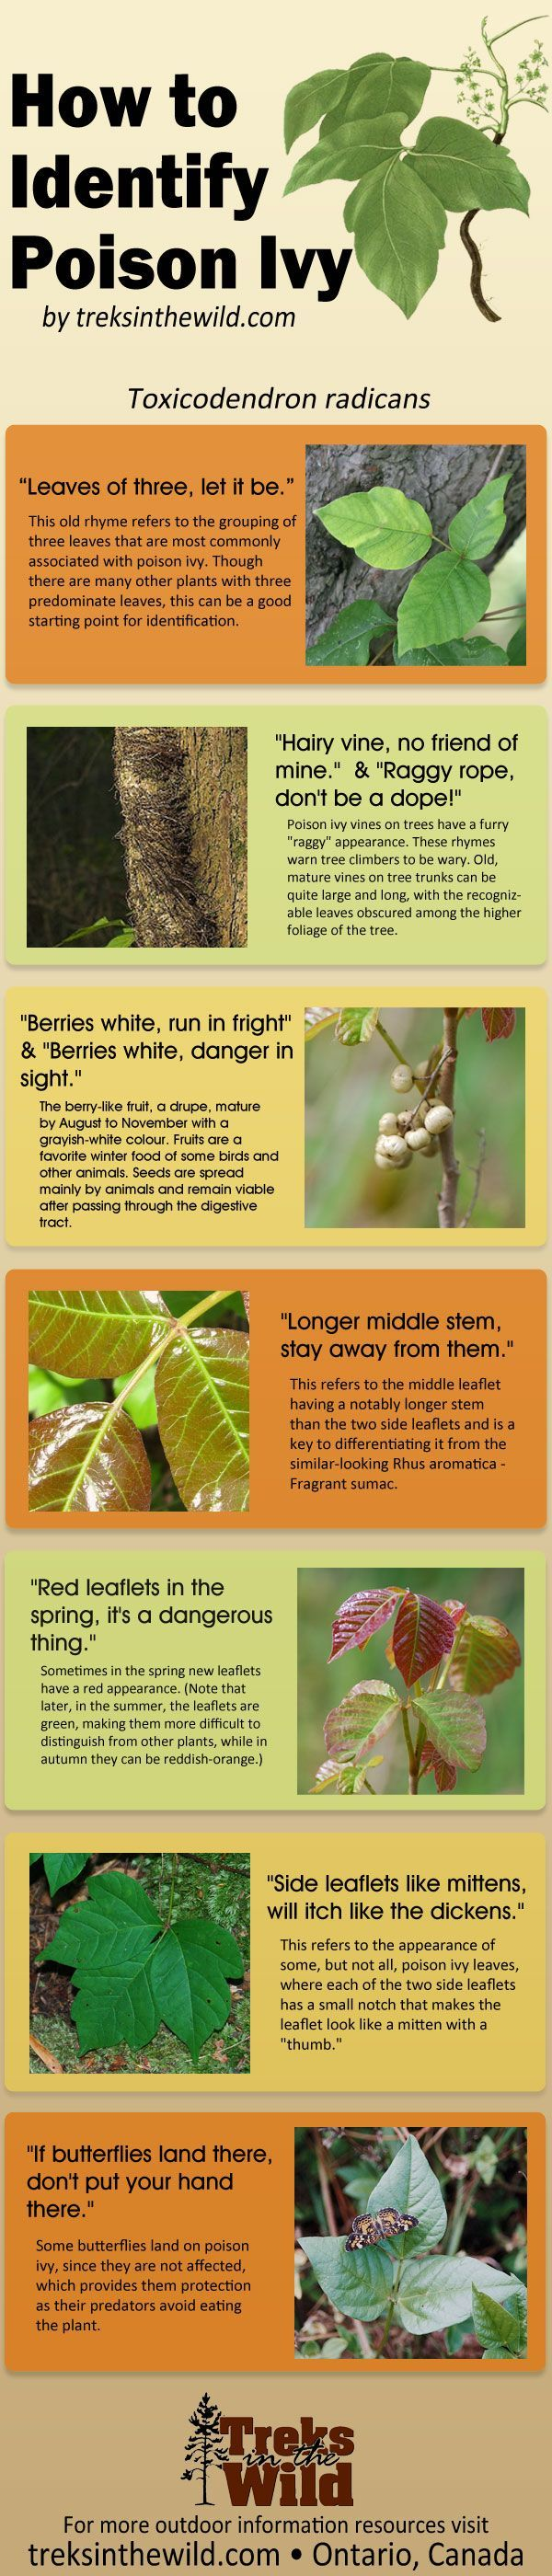 This is especially important in California, where poison ivy grows everywhere from the coast to the mountains.